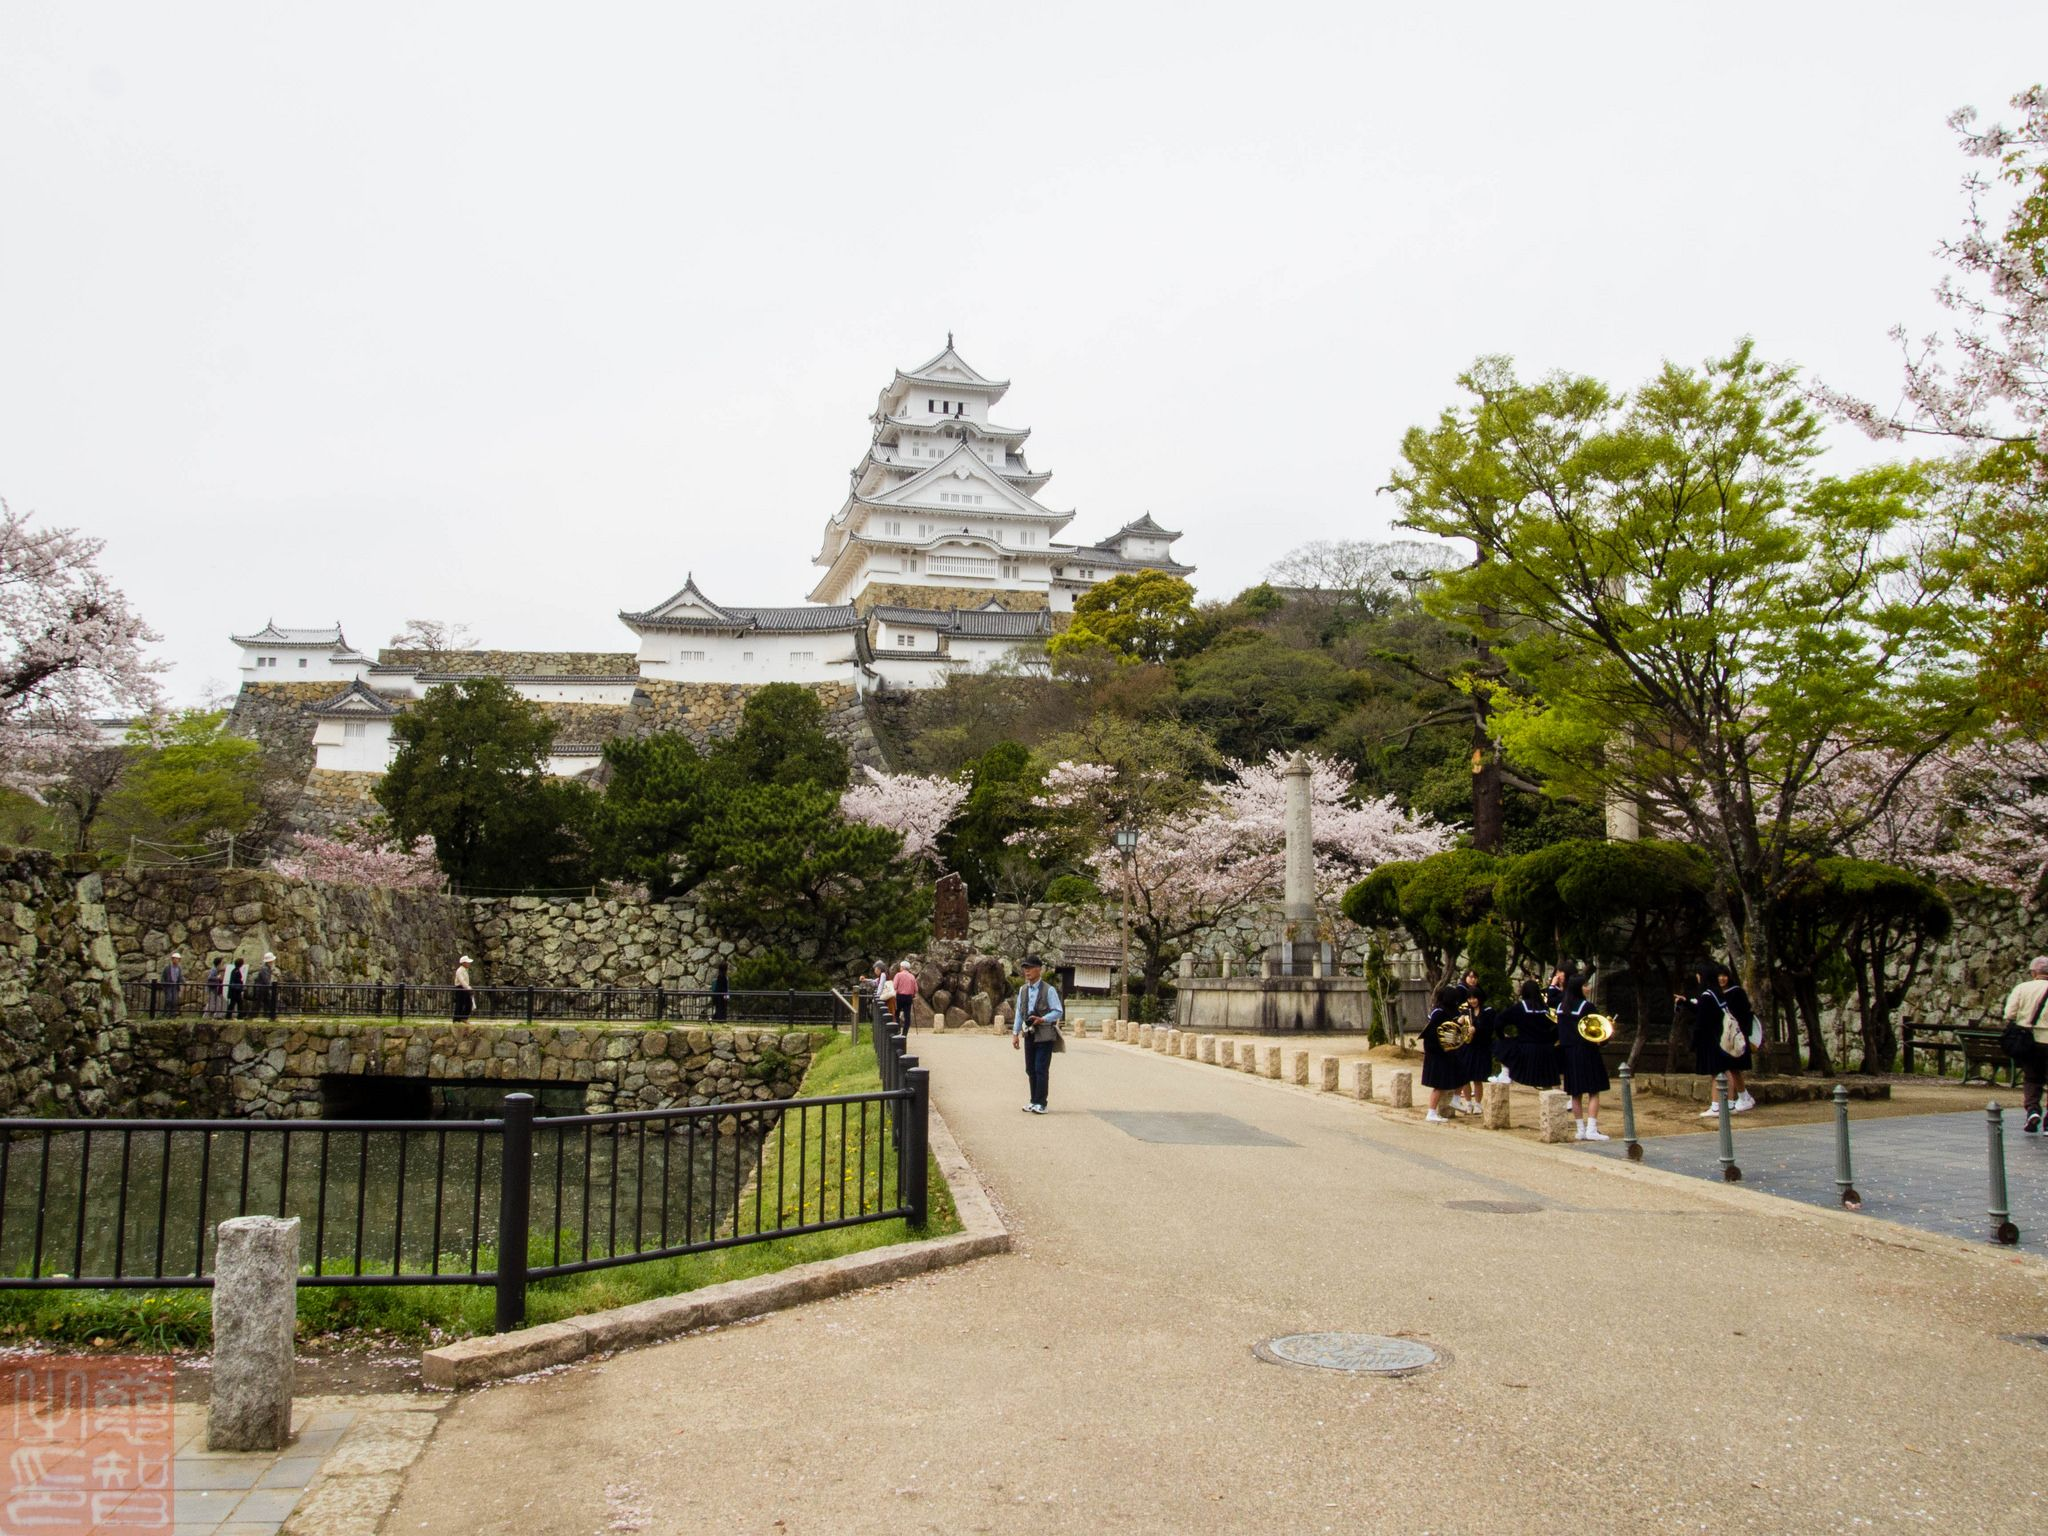 https://flic.kr/p/G15kM8 | Himeji Castle 2016 | Himeji Castle today is a beautiful Japanese castle located about one hour west from Osaka. Today more than 2 million visitors last year  since it reopened in 2015 after being closed from 2009 for extensive restoration works on the main keep or bailey, mostly replaced the roof and external white plaster. In 2015, there were 2.87 million visitors compared with the local population of about 600,000. This has become the most popular castle to…